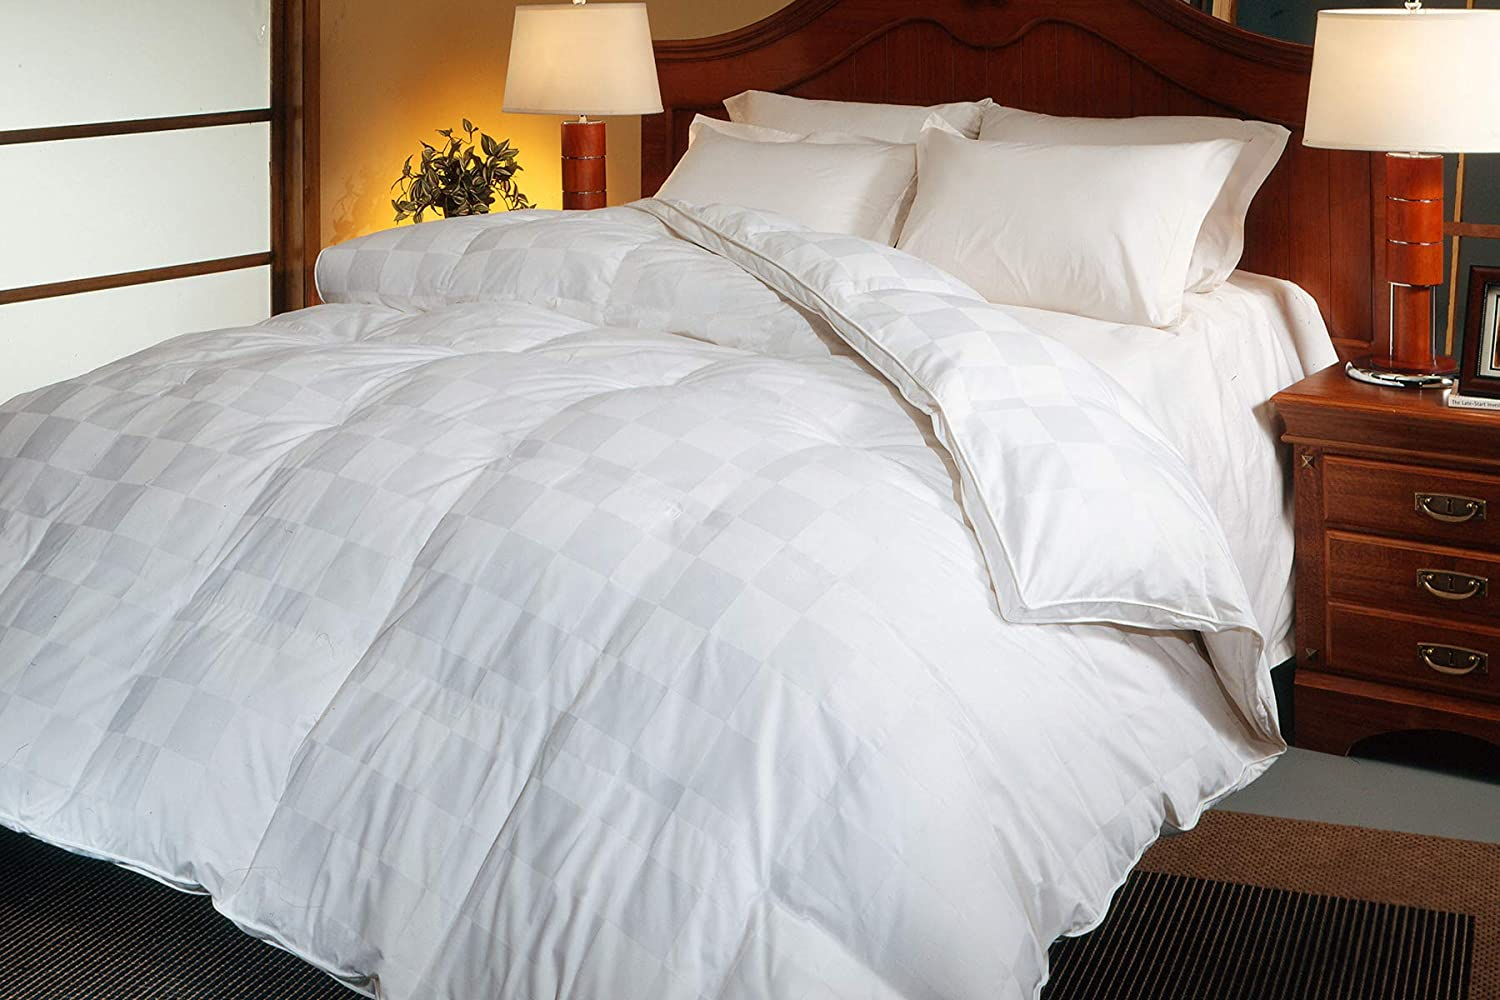 Blue Ridge Home Fashions White 500 Thread Count Euro Check Goose Down Comforter, King